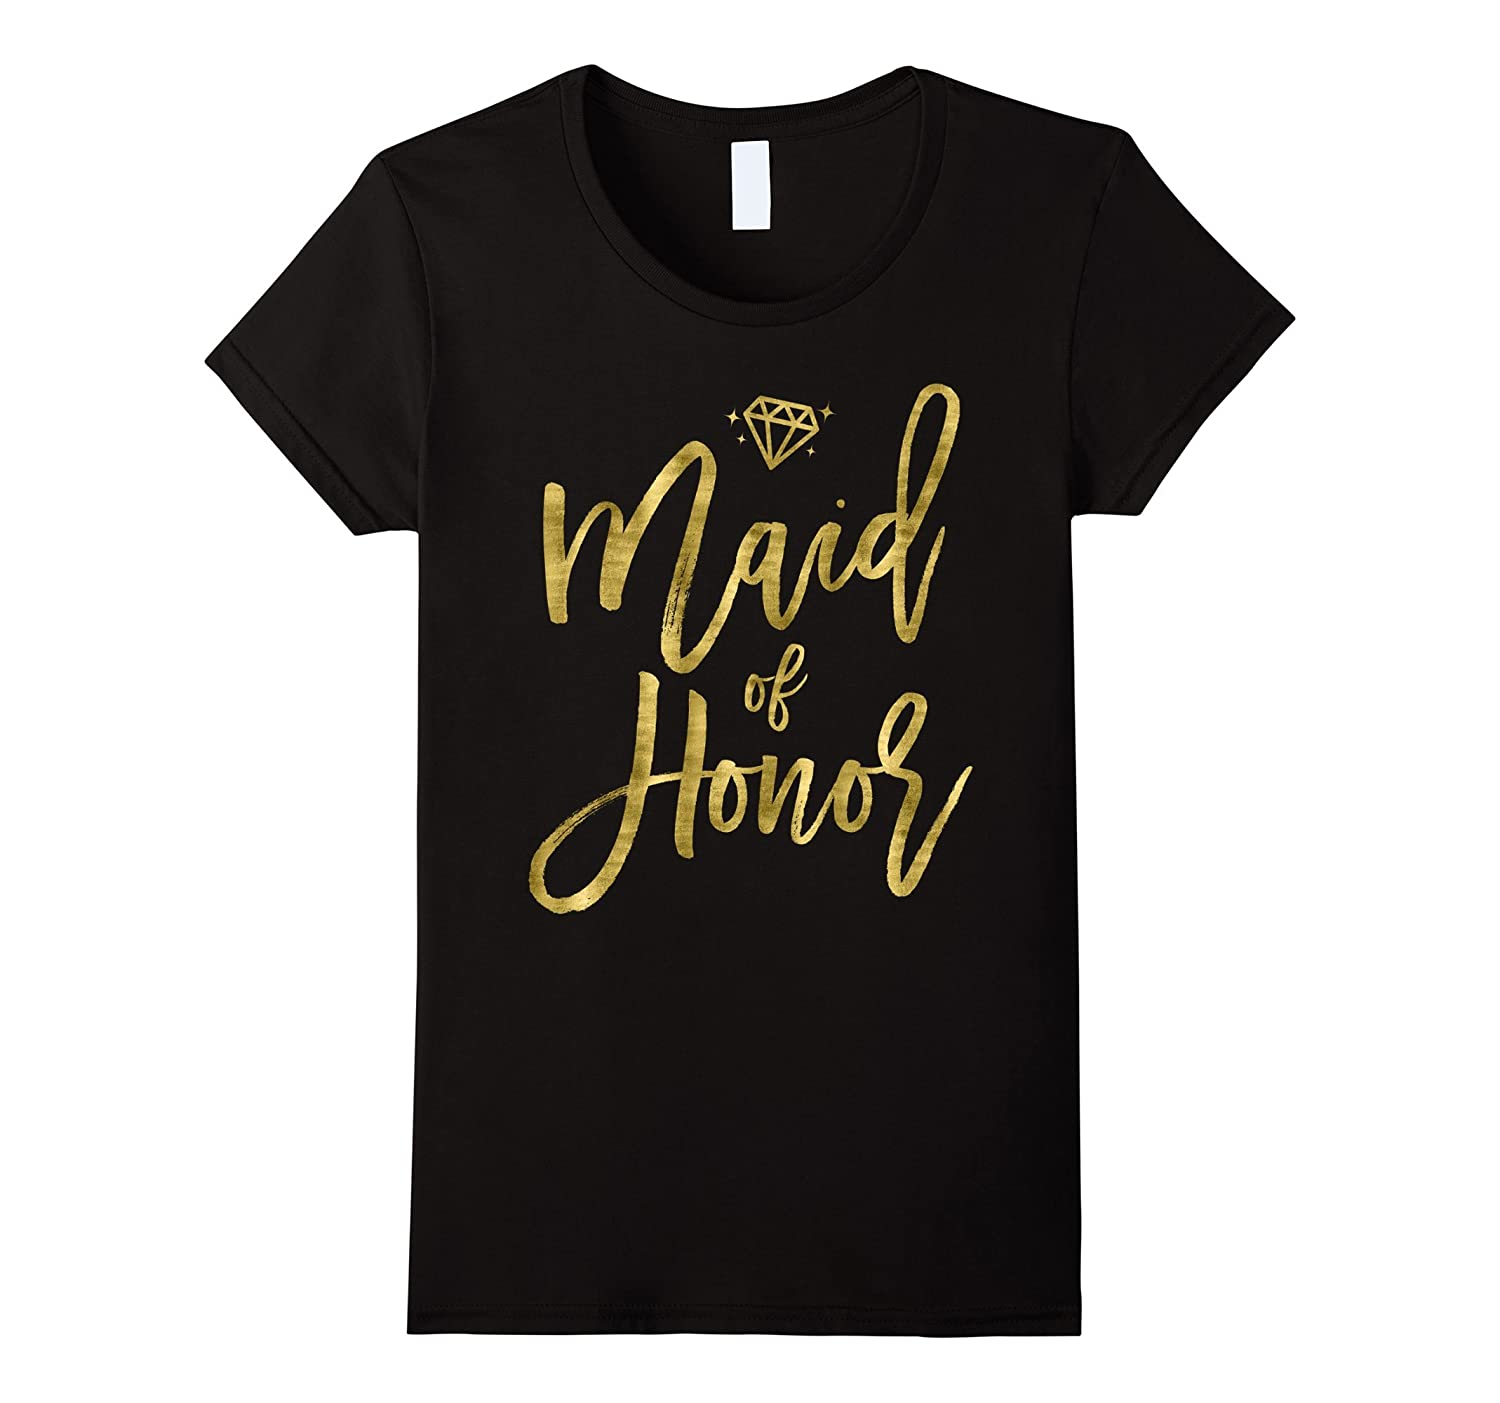 Womens Bridal Party Shirts Faux Gold Diamond Maid Of Honor-ah my shirt one gift